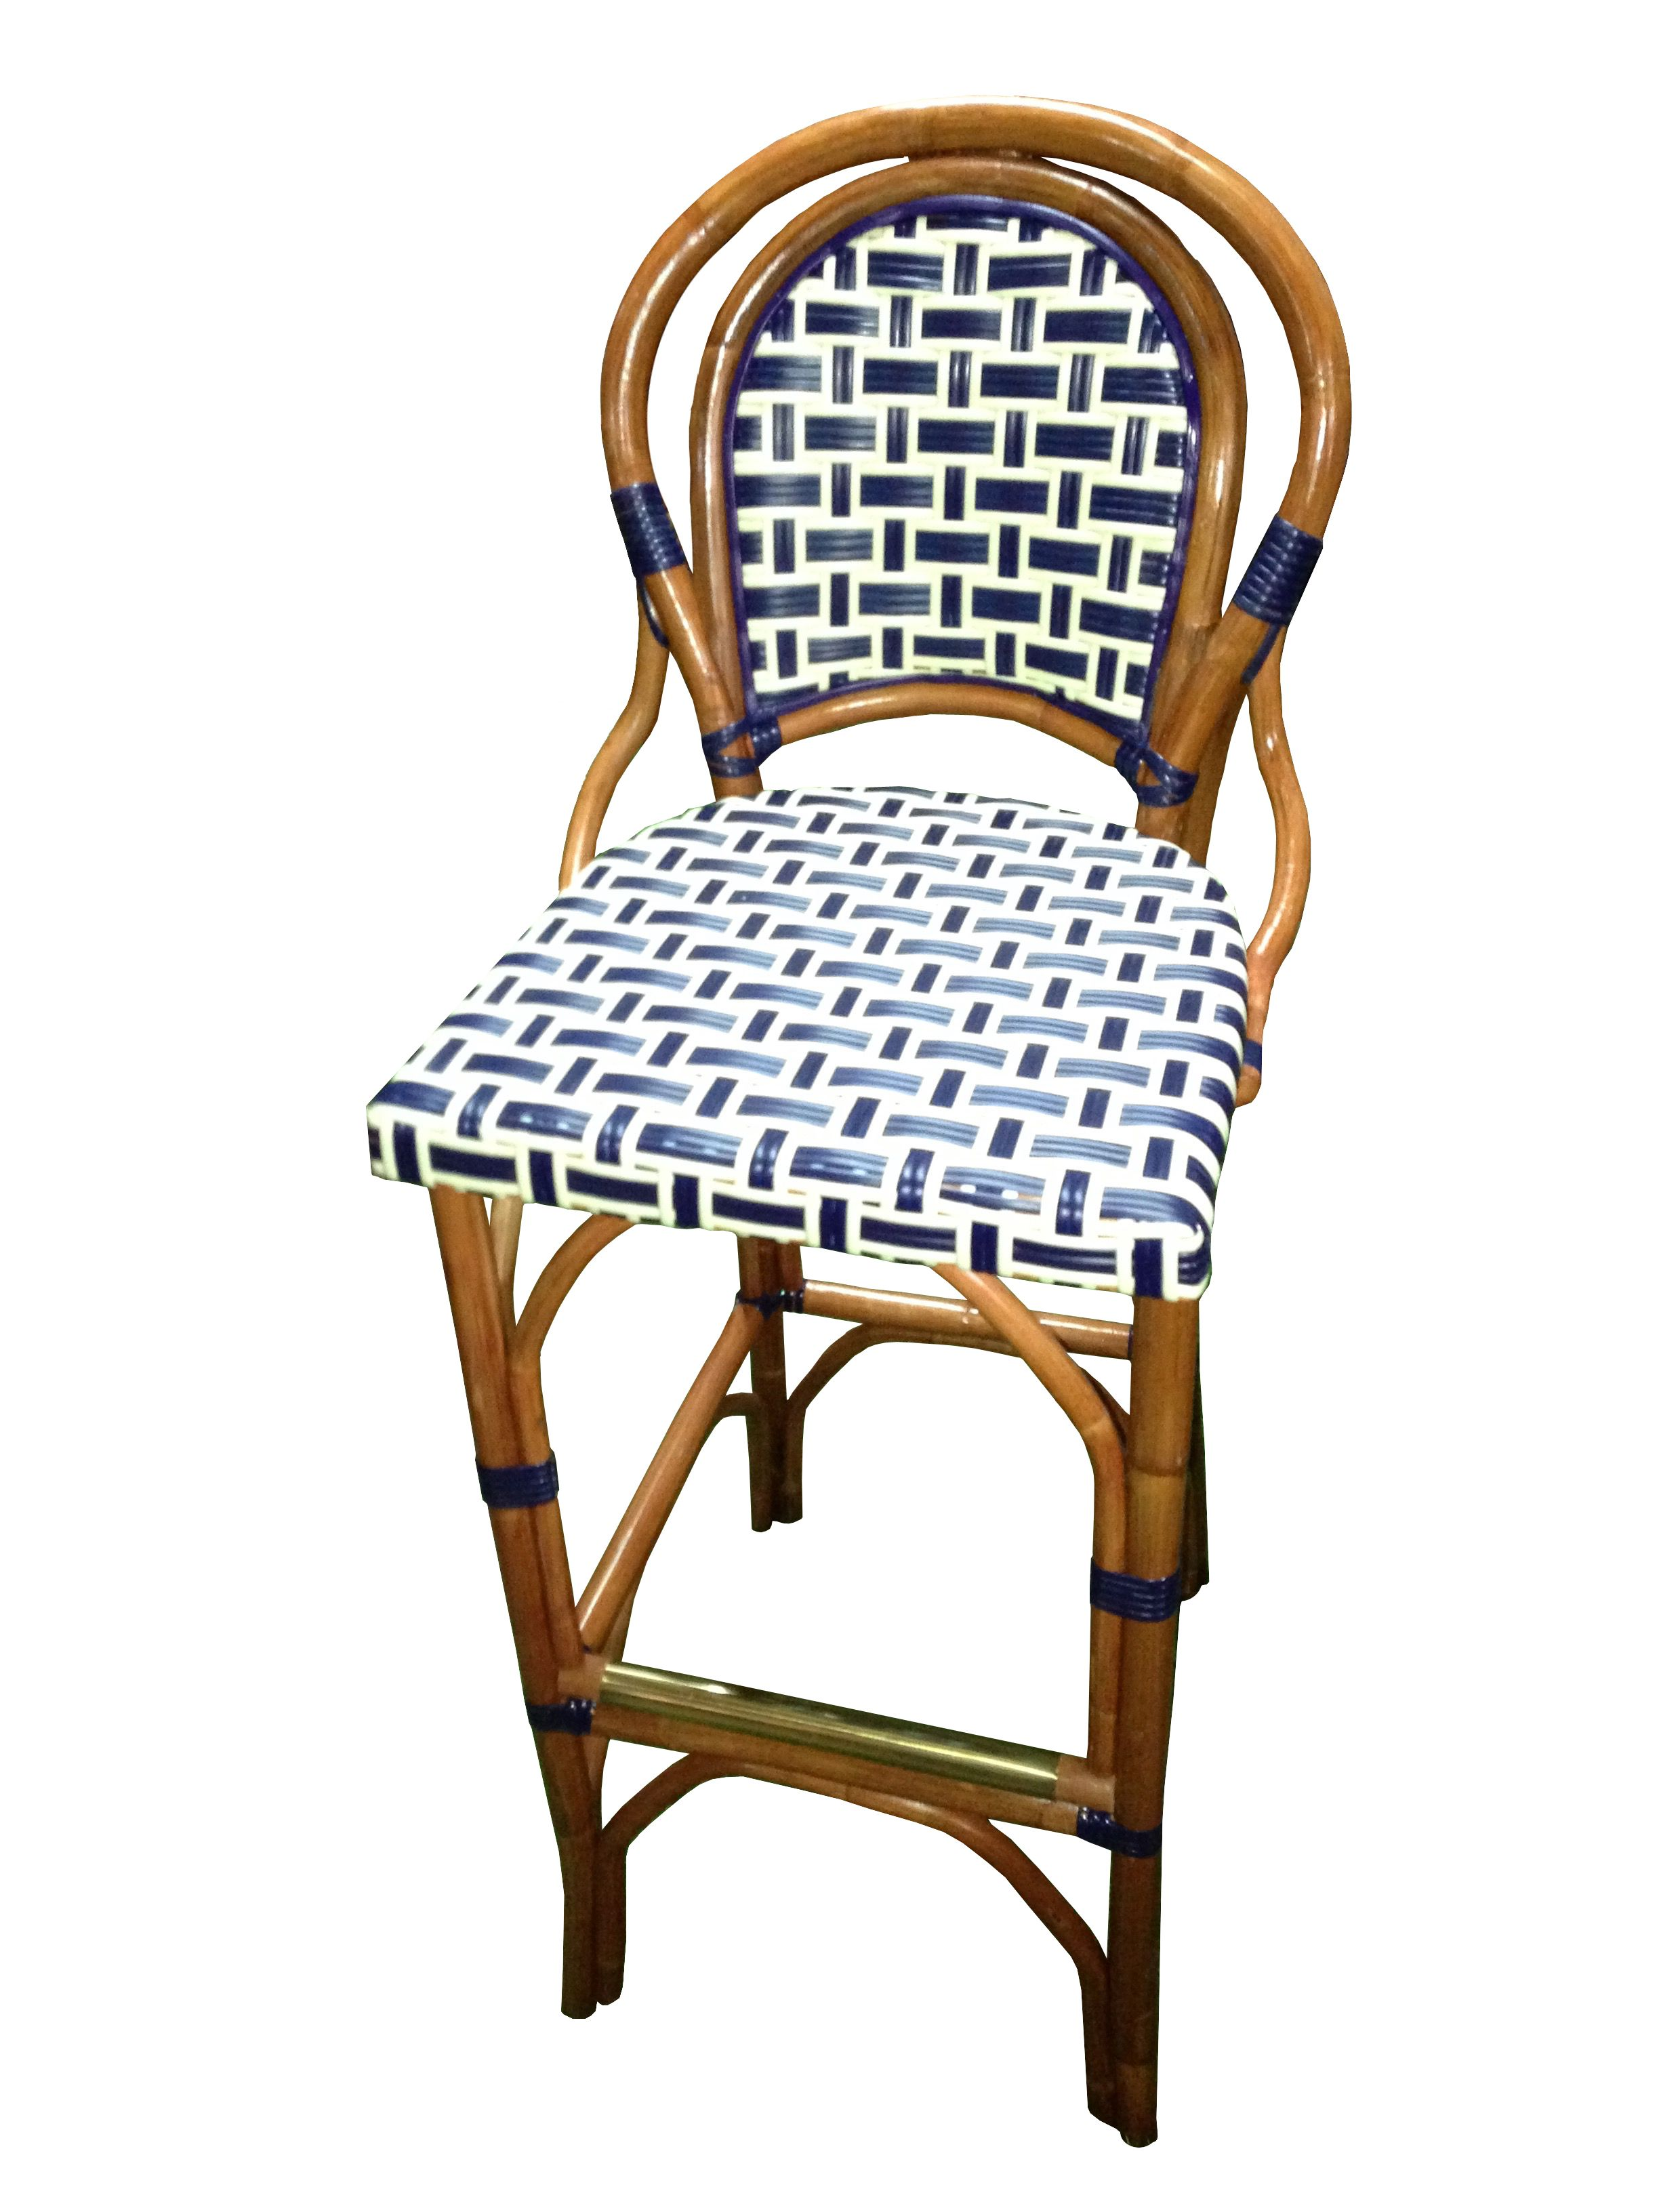 Hk 331 Diablo Weave Navy Cream French Bistro Chairs Bar Stools Bistro Stools